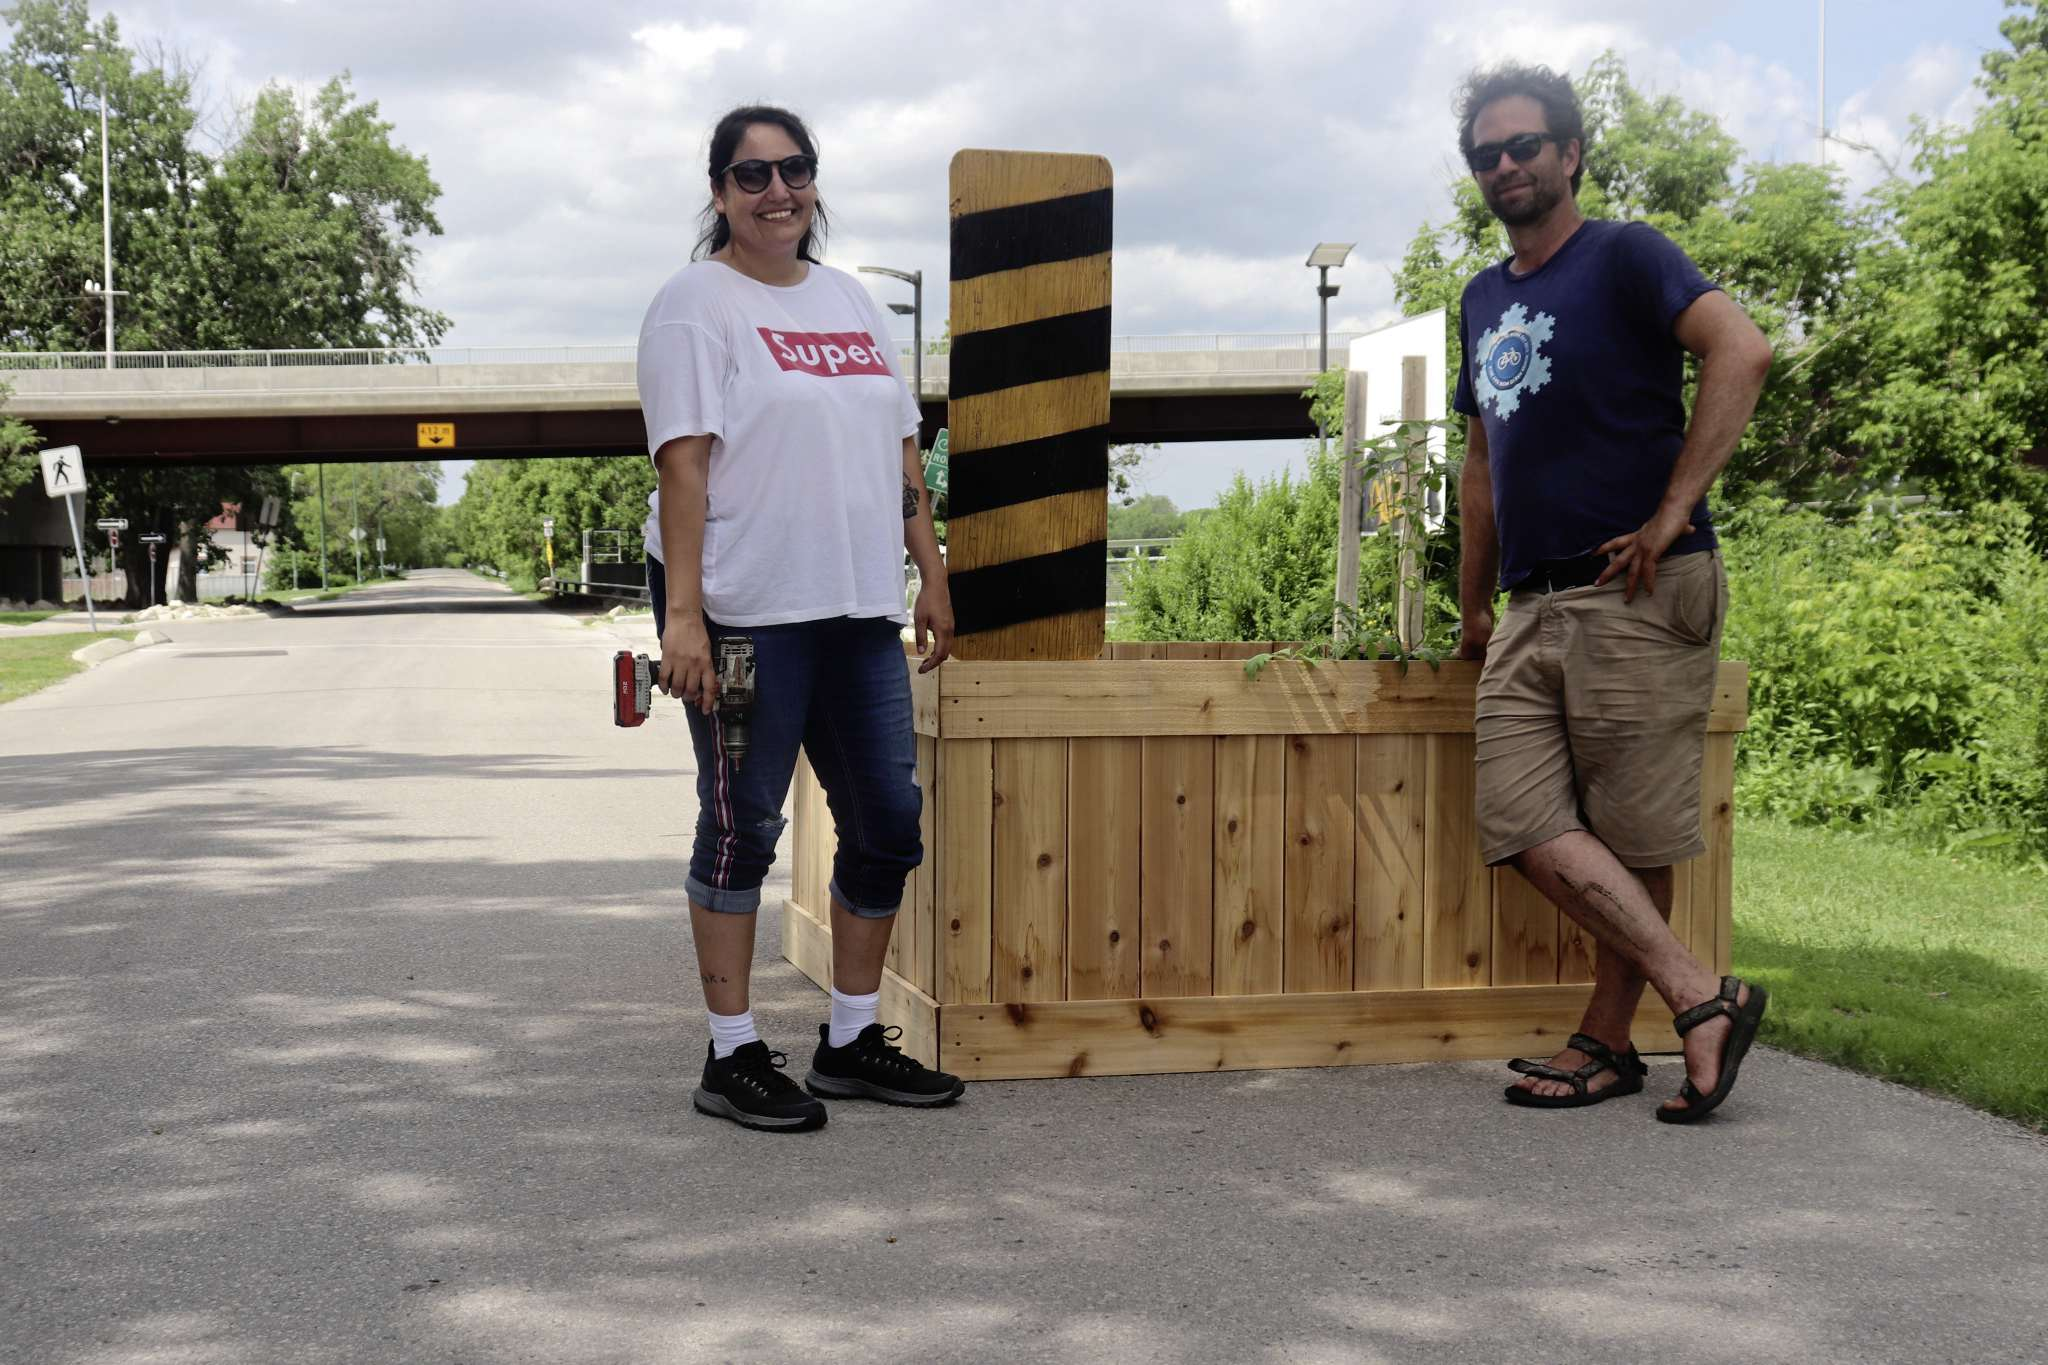 From left: Janell Henry, Healing Trails' program manager and Anders Swanson, Winnipeg Trails' executive director, standing beside one of the planter box traffic-calming devices.